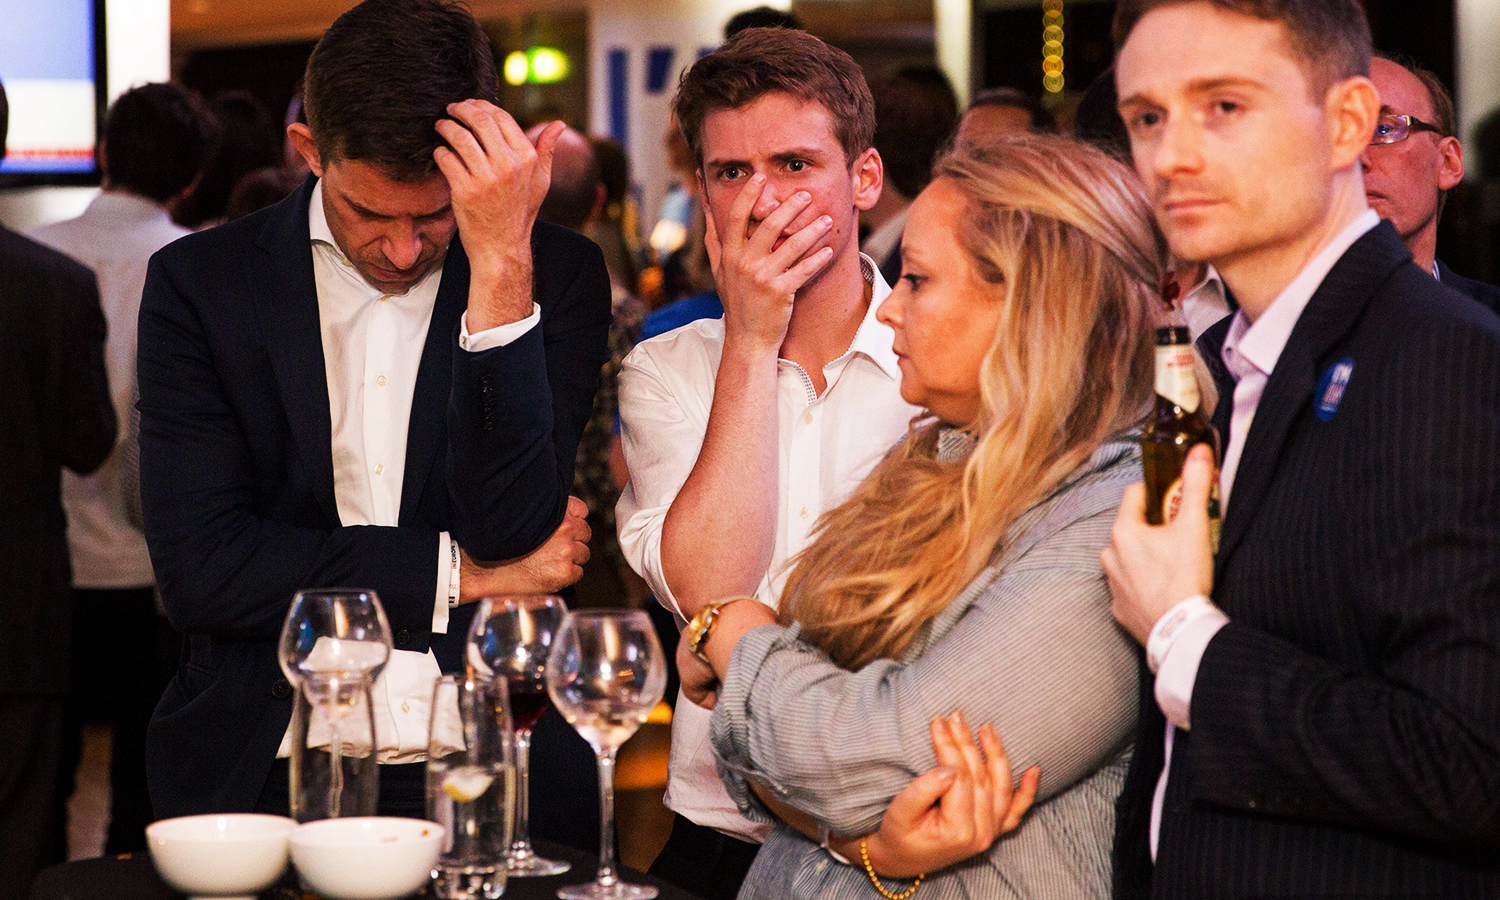 Supporters of the 'Stronger In' Campaign react as results of the EU referendum are announced at a results party at the Royal Festival Hall in London on June 23, 2016. Bookmakers dramatically reversed the odds on Britain leaving the European Union on Friday as early results from a historic referendum pointed to strong support for a Brexit. / AFP PHOTO / POOL / ROB STOTHARD